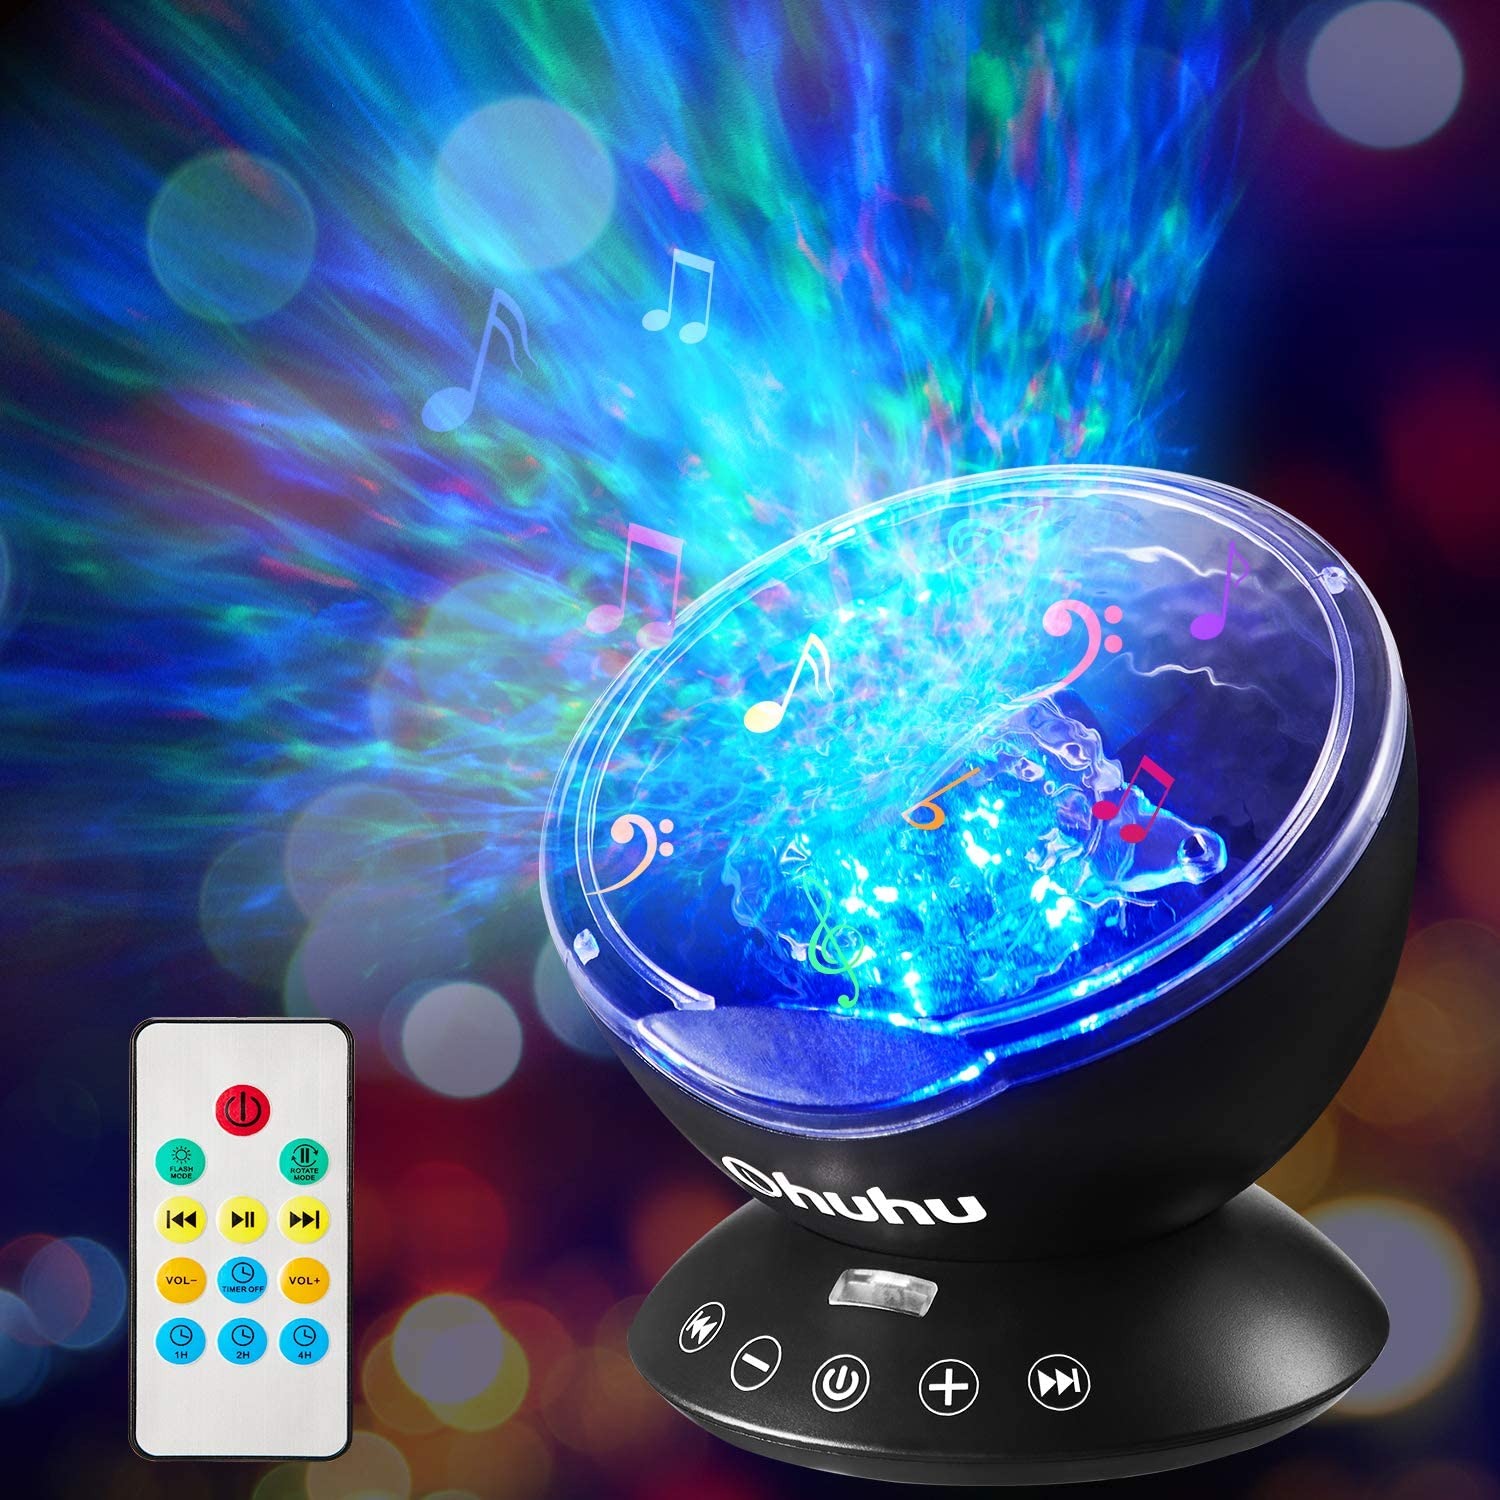 Ocean Wave Night Light Projector, Ohuhu Remote Control Projection lamp Rotation Northern Light Projector Mood Light, Upgraded 12 LED 7 Colors for Baby Nursery, Adults and Kids Gifts